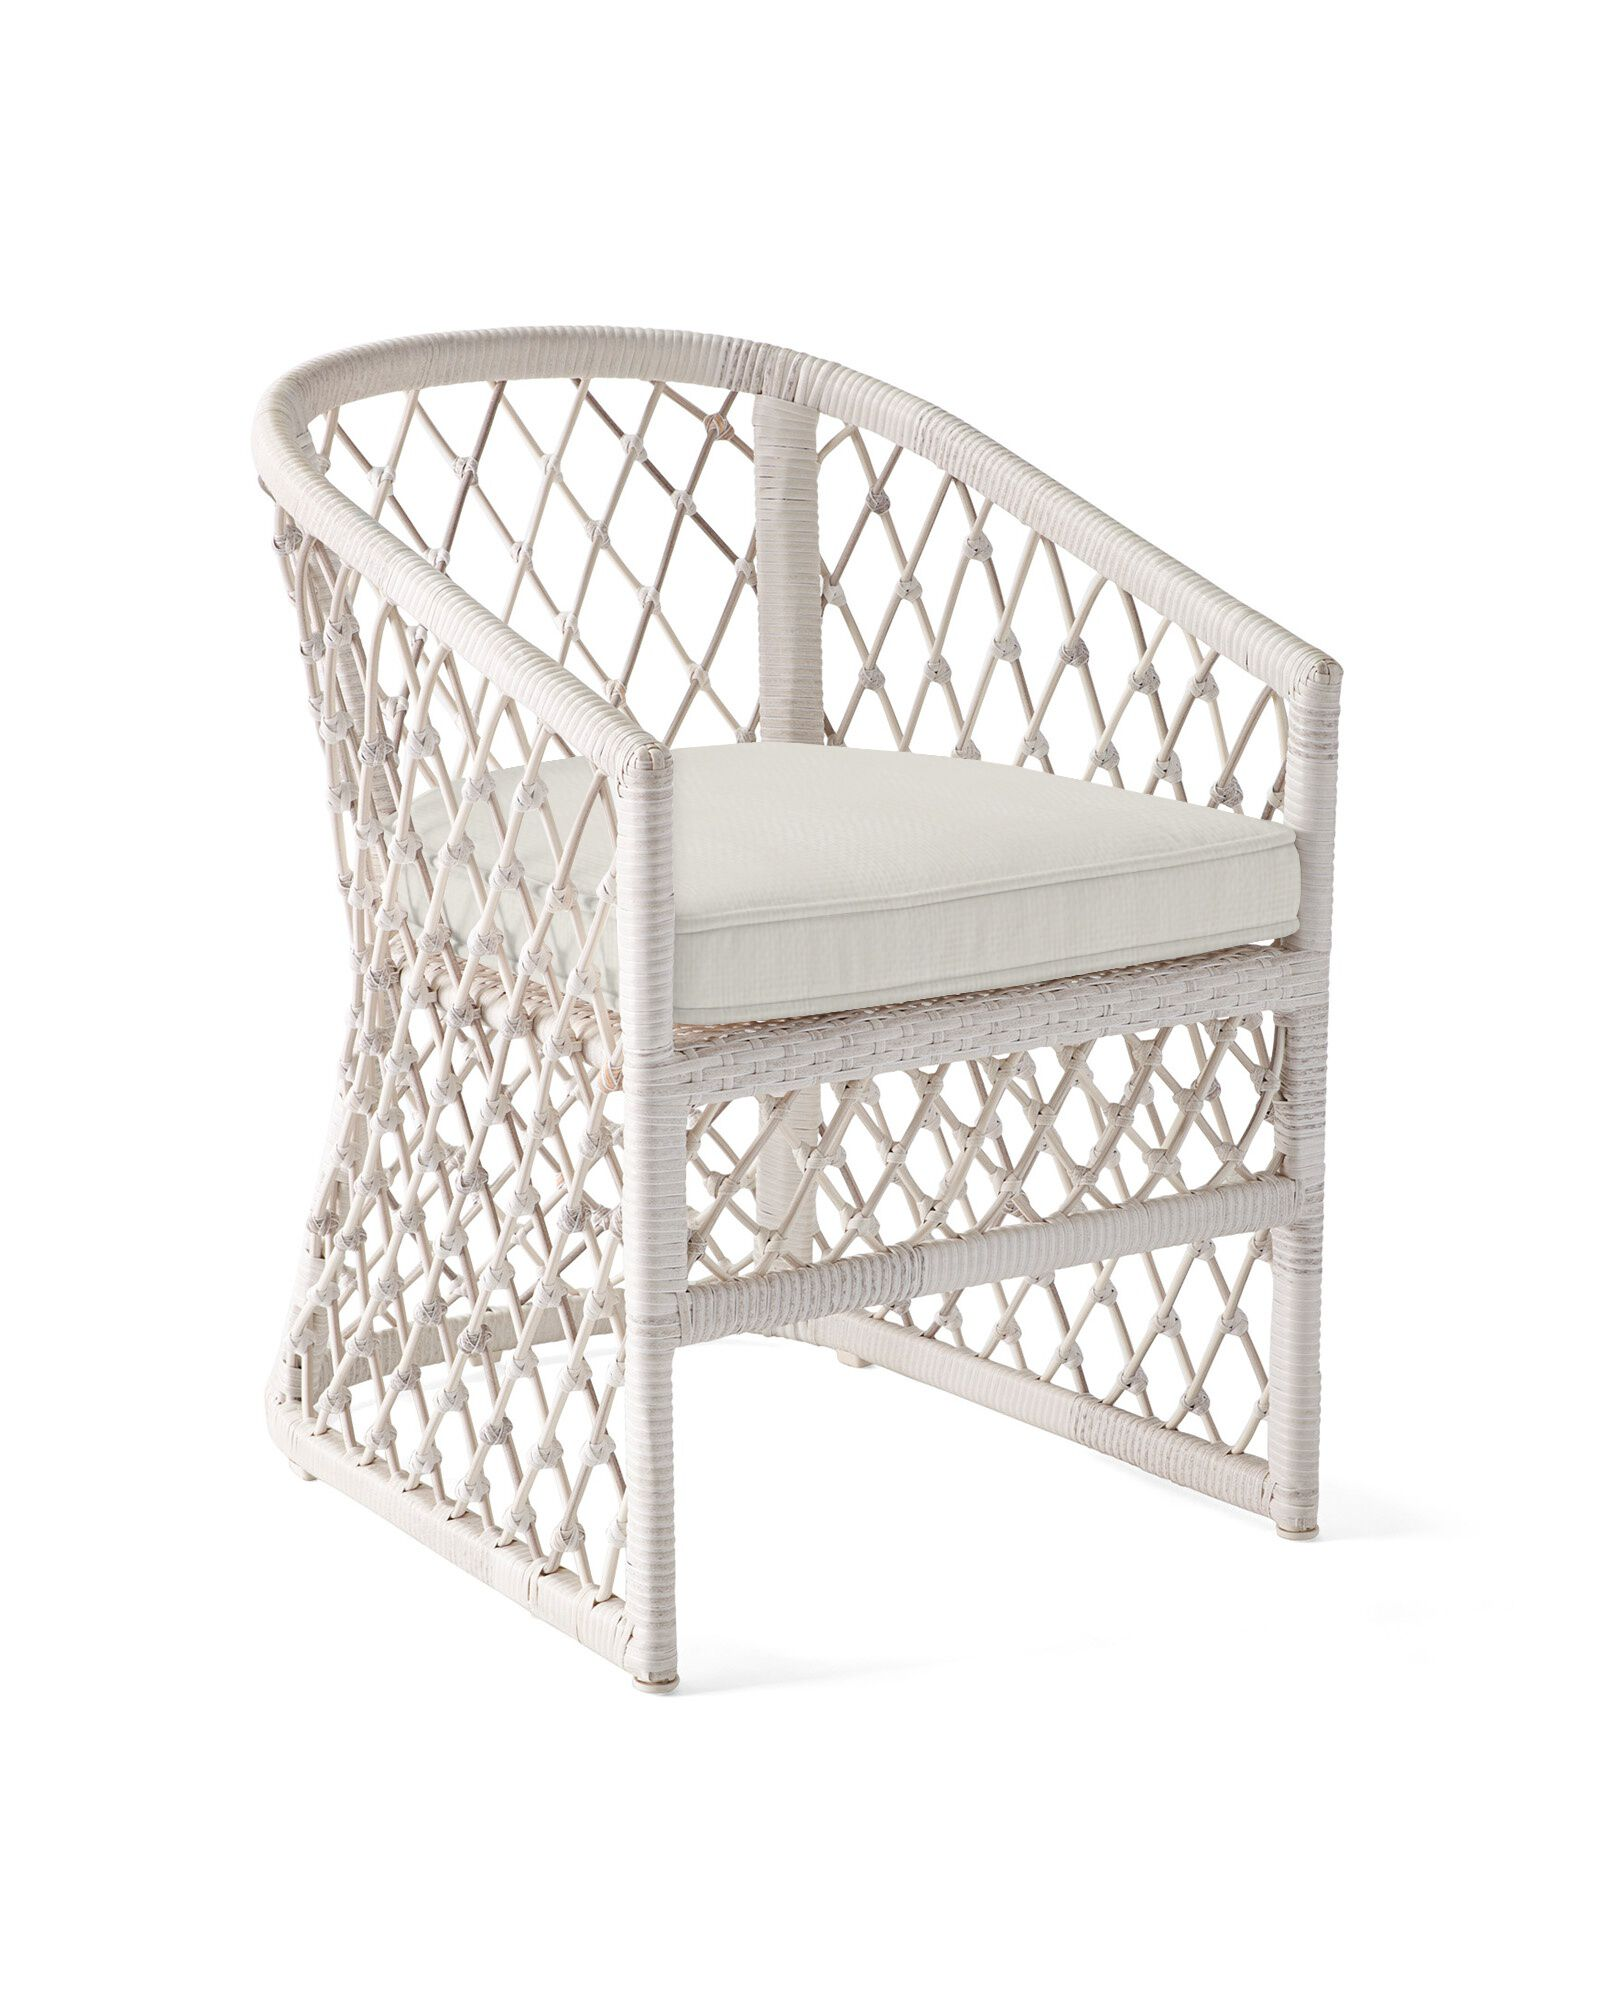 Cushion Cover for Capistrano Dining Chair, Perennials Basketweave Chalk